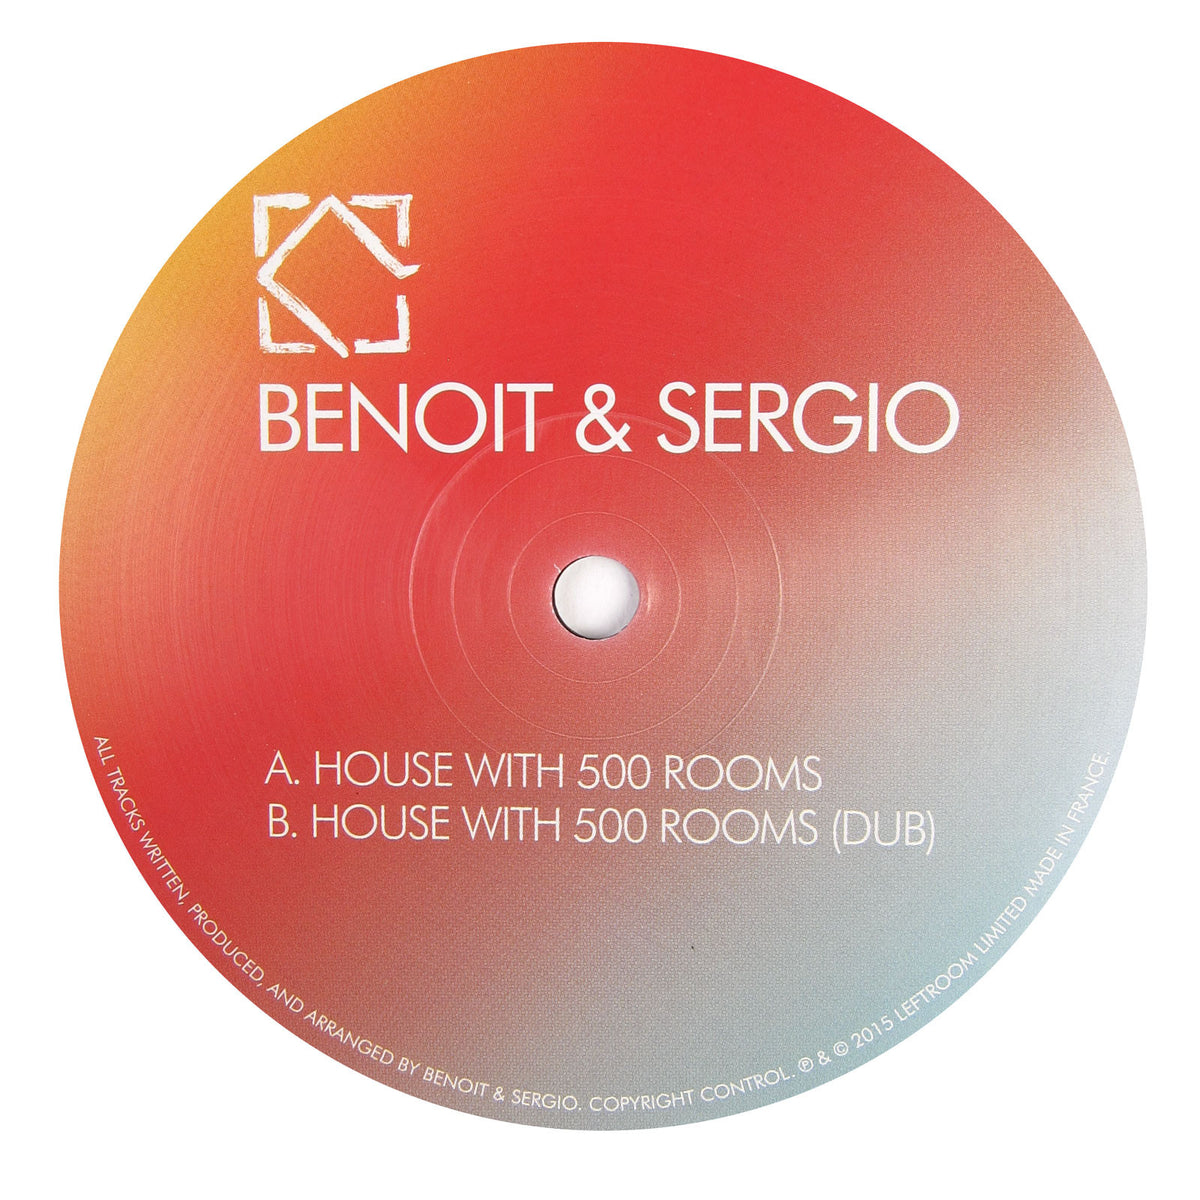 Benoit & Sergio: House With 500 Rooms Vinyl 12""